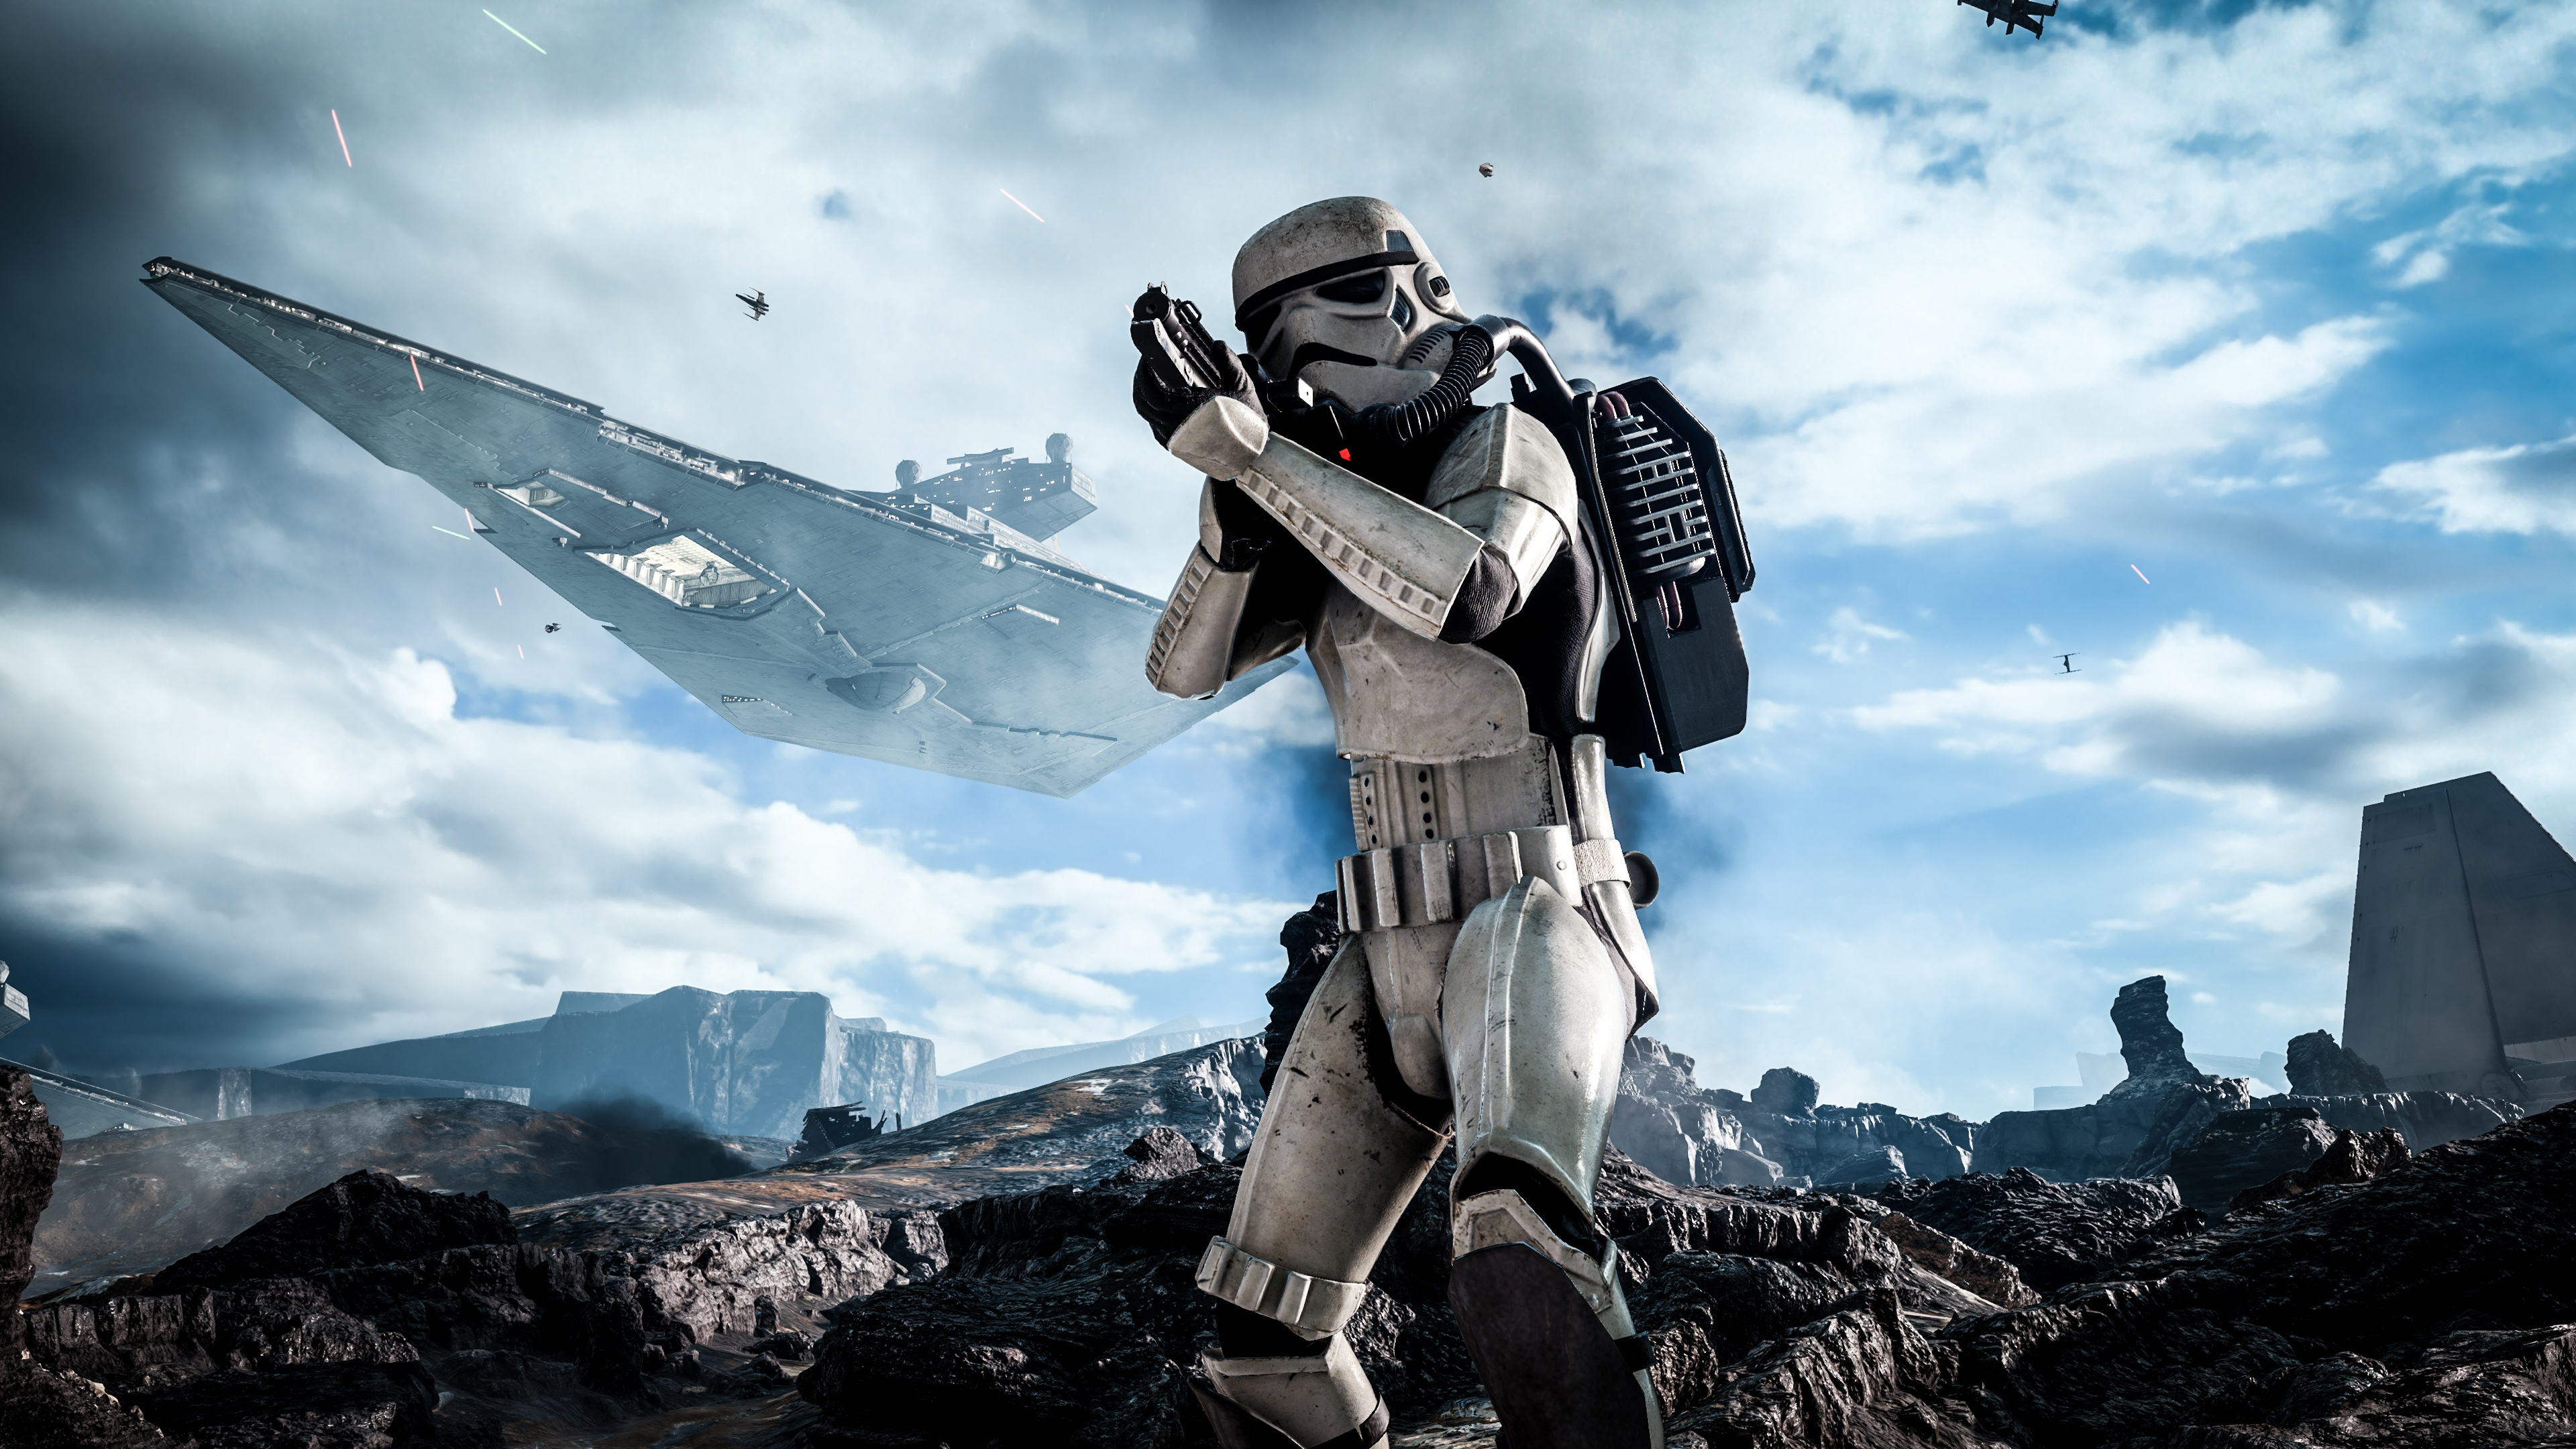 Star Wars Battlefront Stormtrooper Wallpapers In Jpg Format For Free